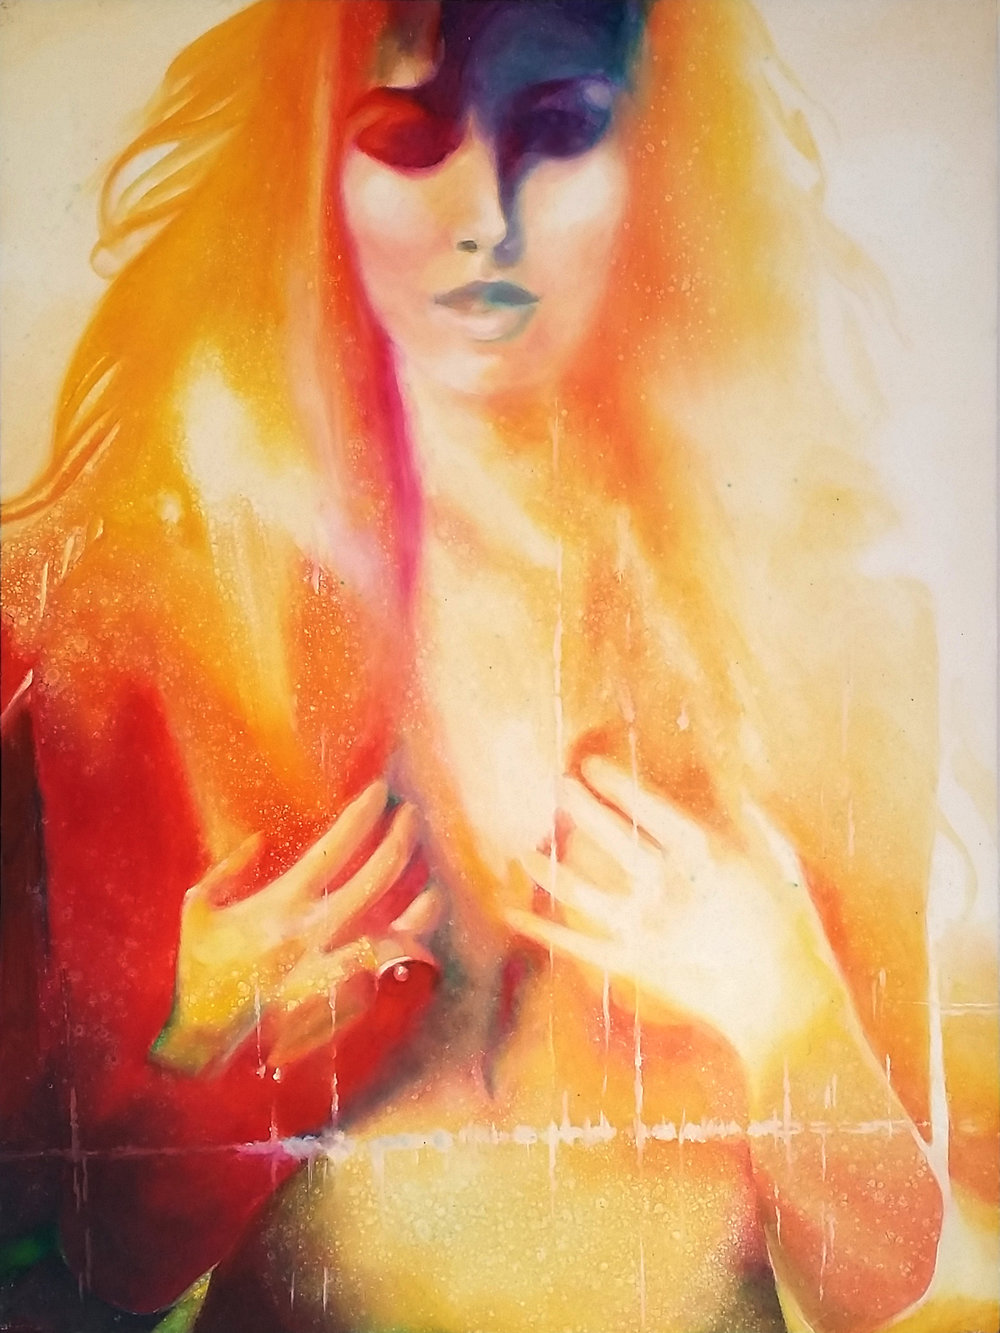 """See Me... Feel Me...Touch Me..."", 2014, Ginger Del Rey  oil on gesso board 24"" x 18"" x 1""  $1500  I love how completely unhidden this woman is. She's fearless. Confident. Demanding to be seen, touched, opened, filled....she's resplendent in her fiery aura. To touch her is to feel ecstasy and pure light. I named after a lyric from one of my favorite songs by The Who."